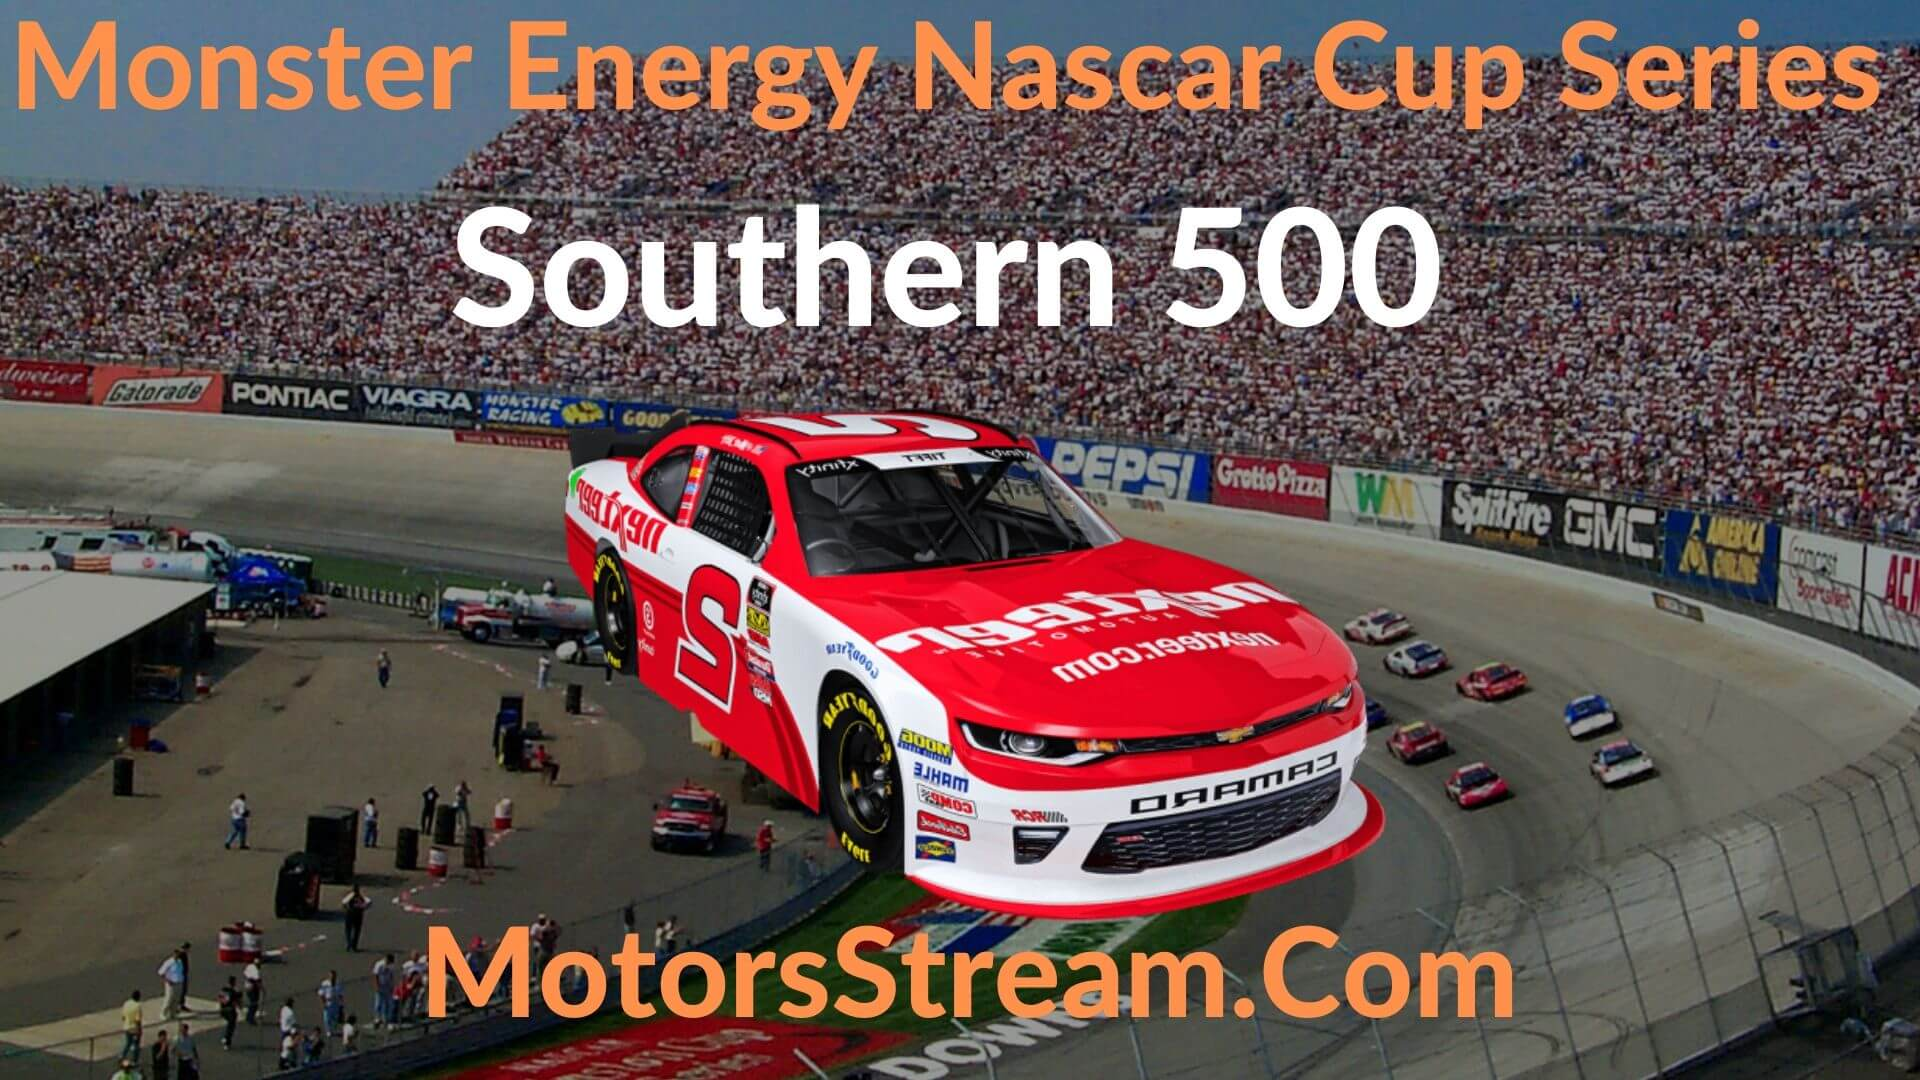 Southern 500 Live Stream   NASCAR CUP 2020